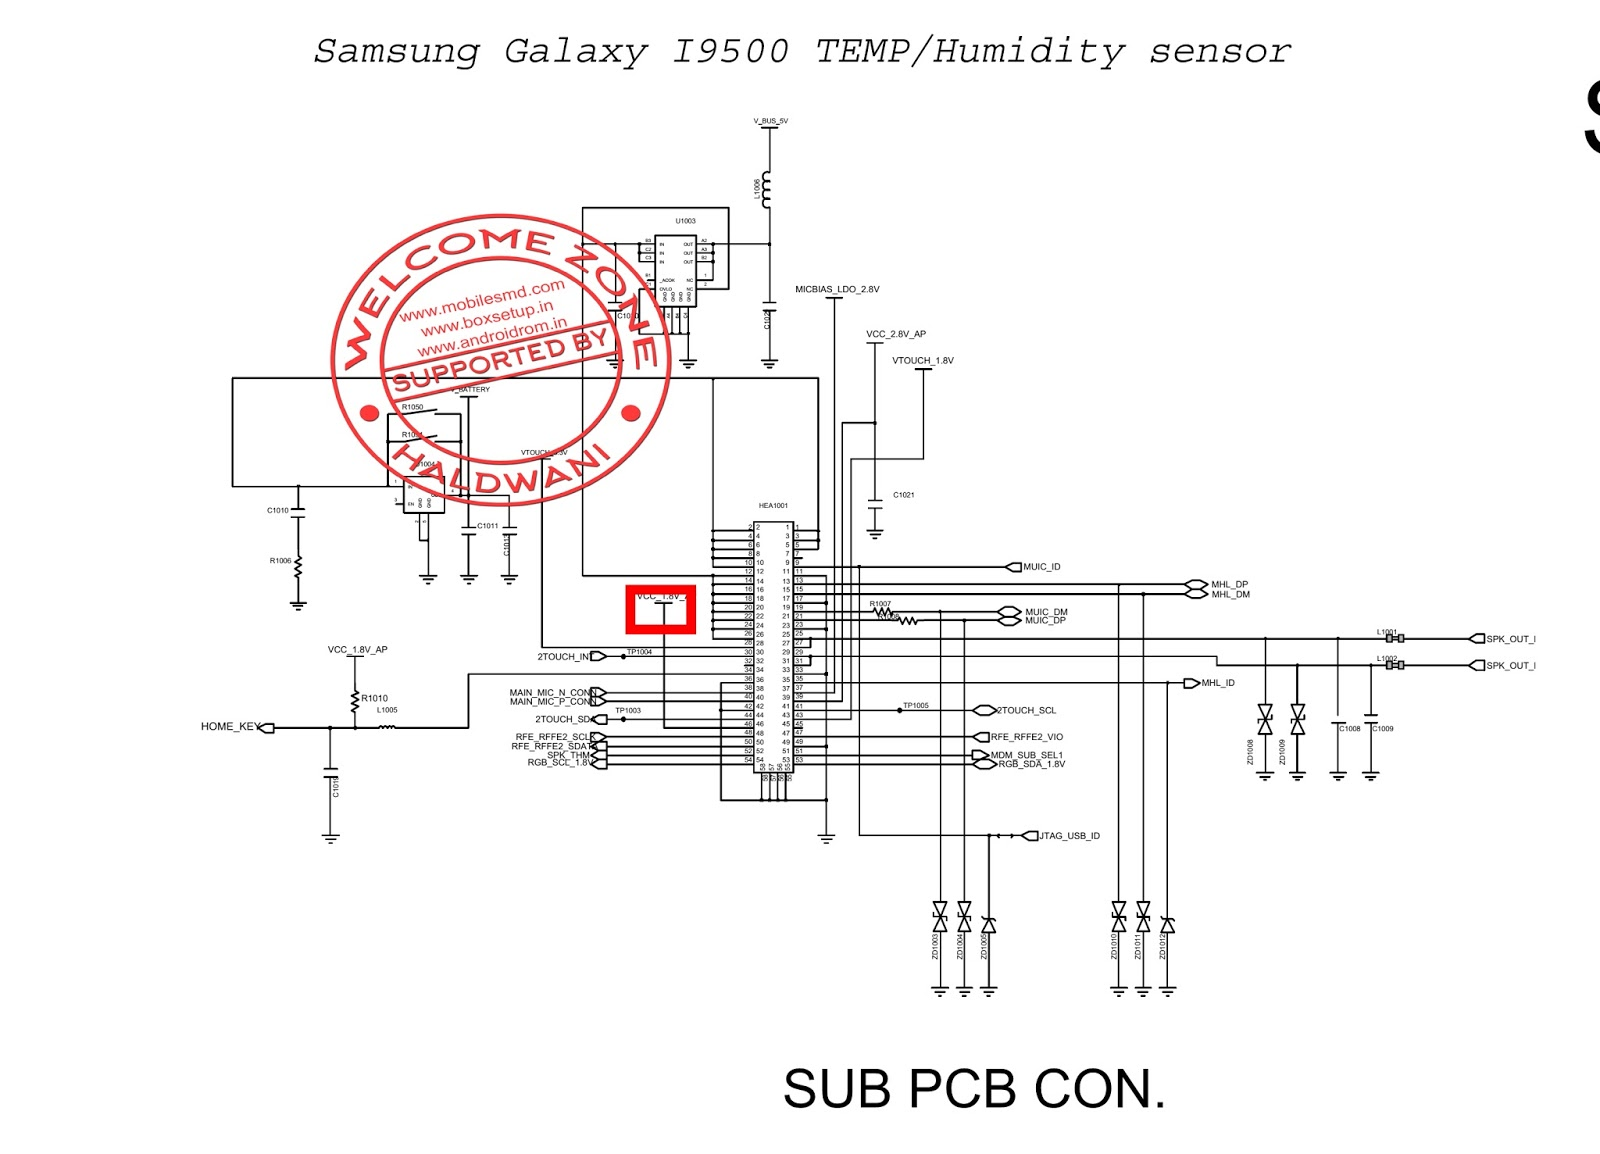 schematic circuit diagram samsung s4